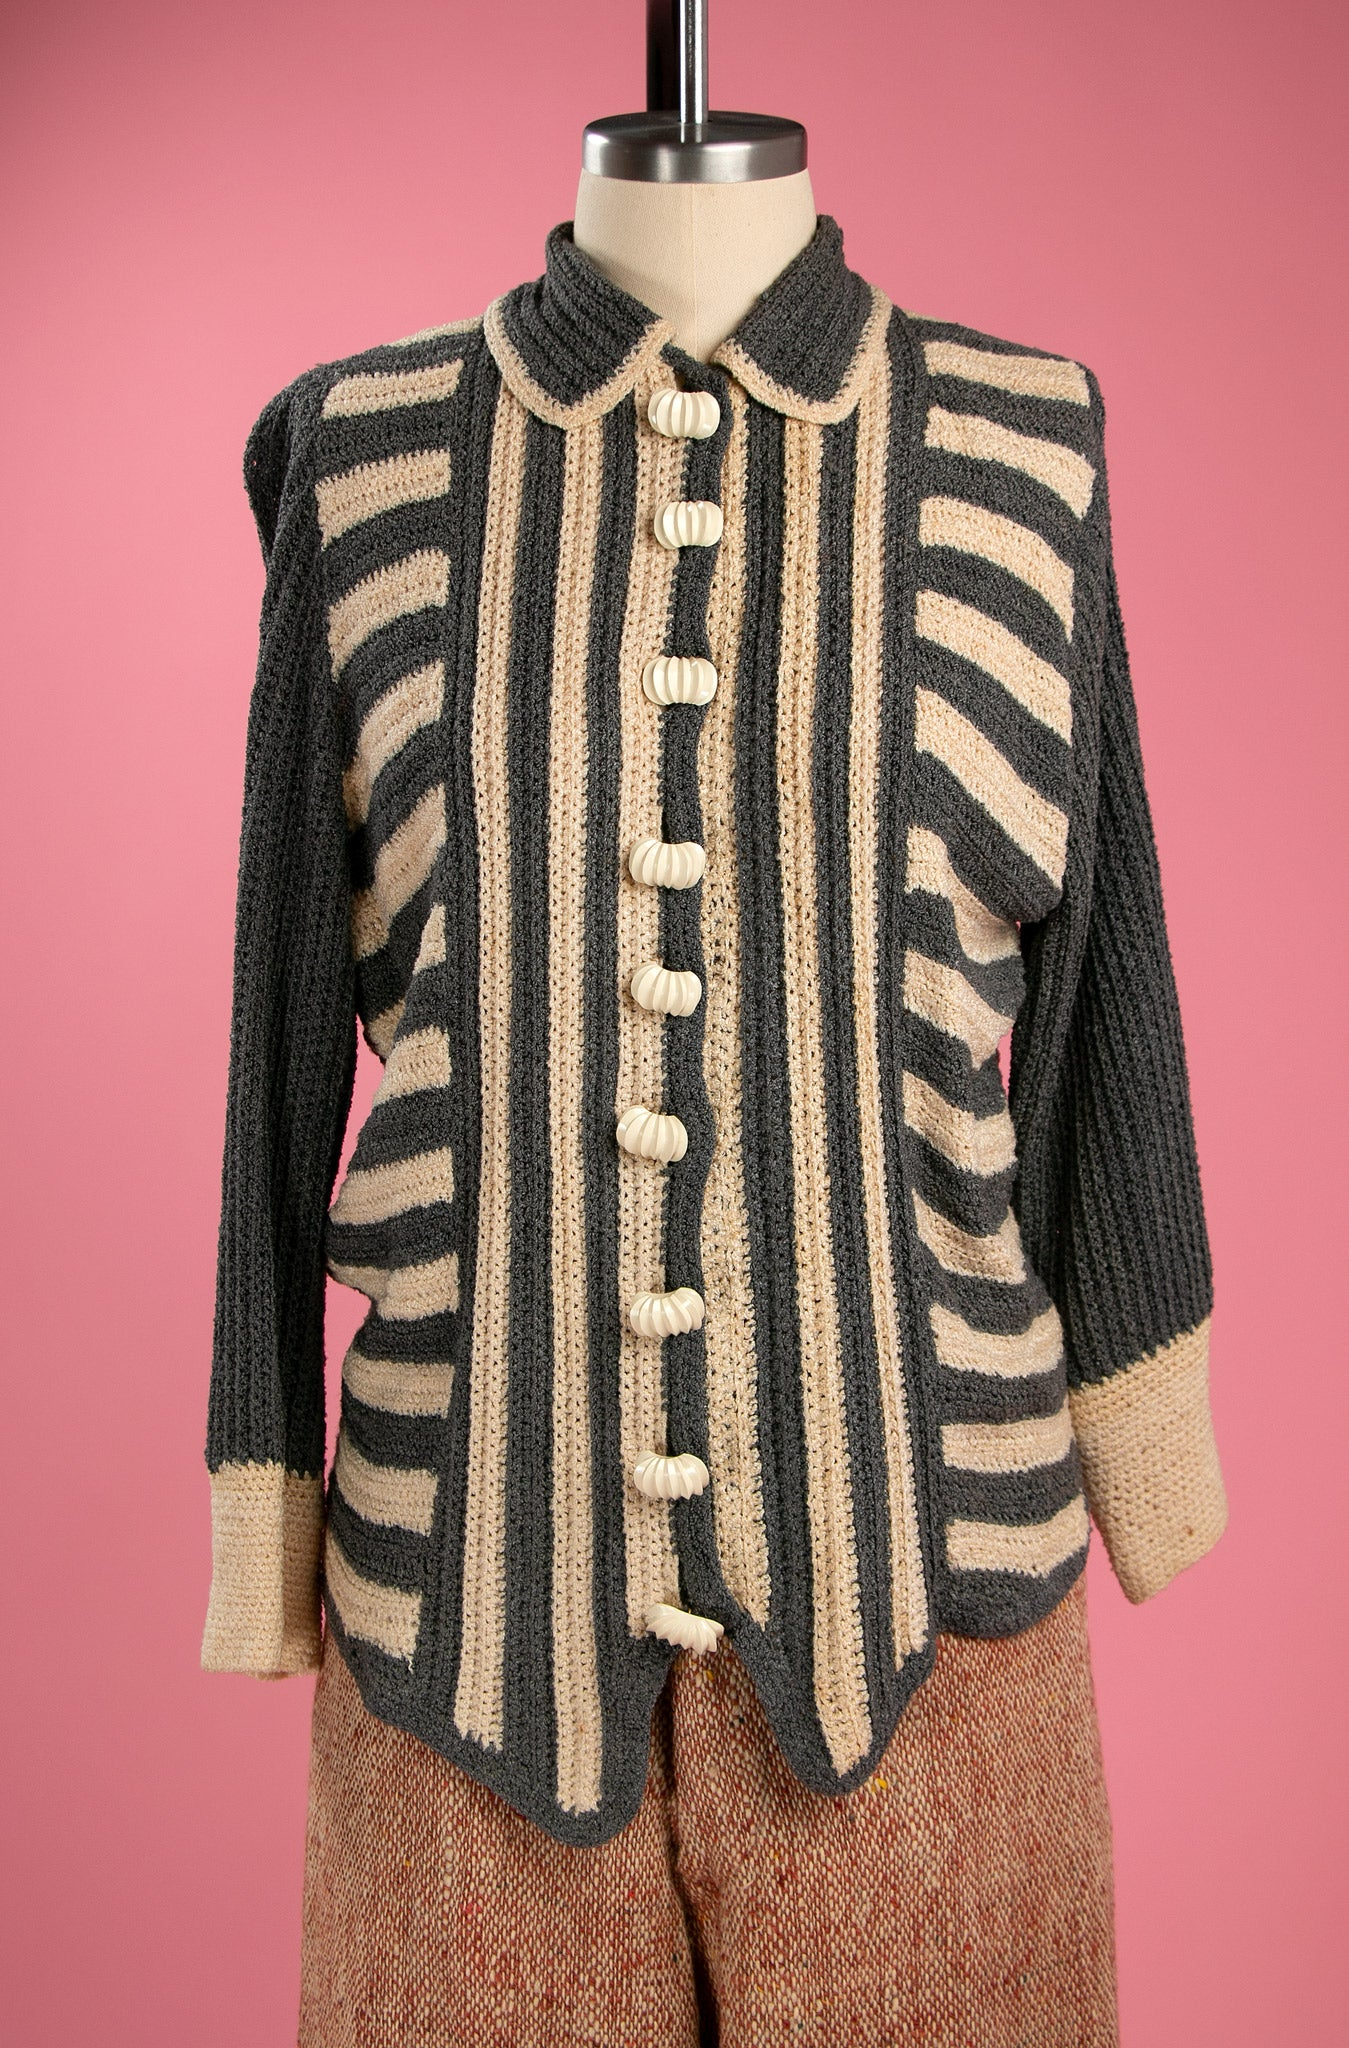 Vintage 1930's Striped Rayon Knit Sweater